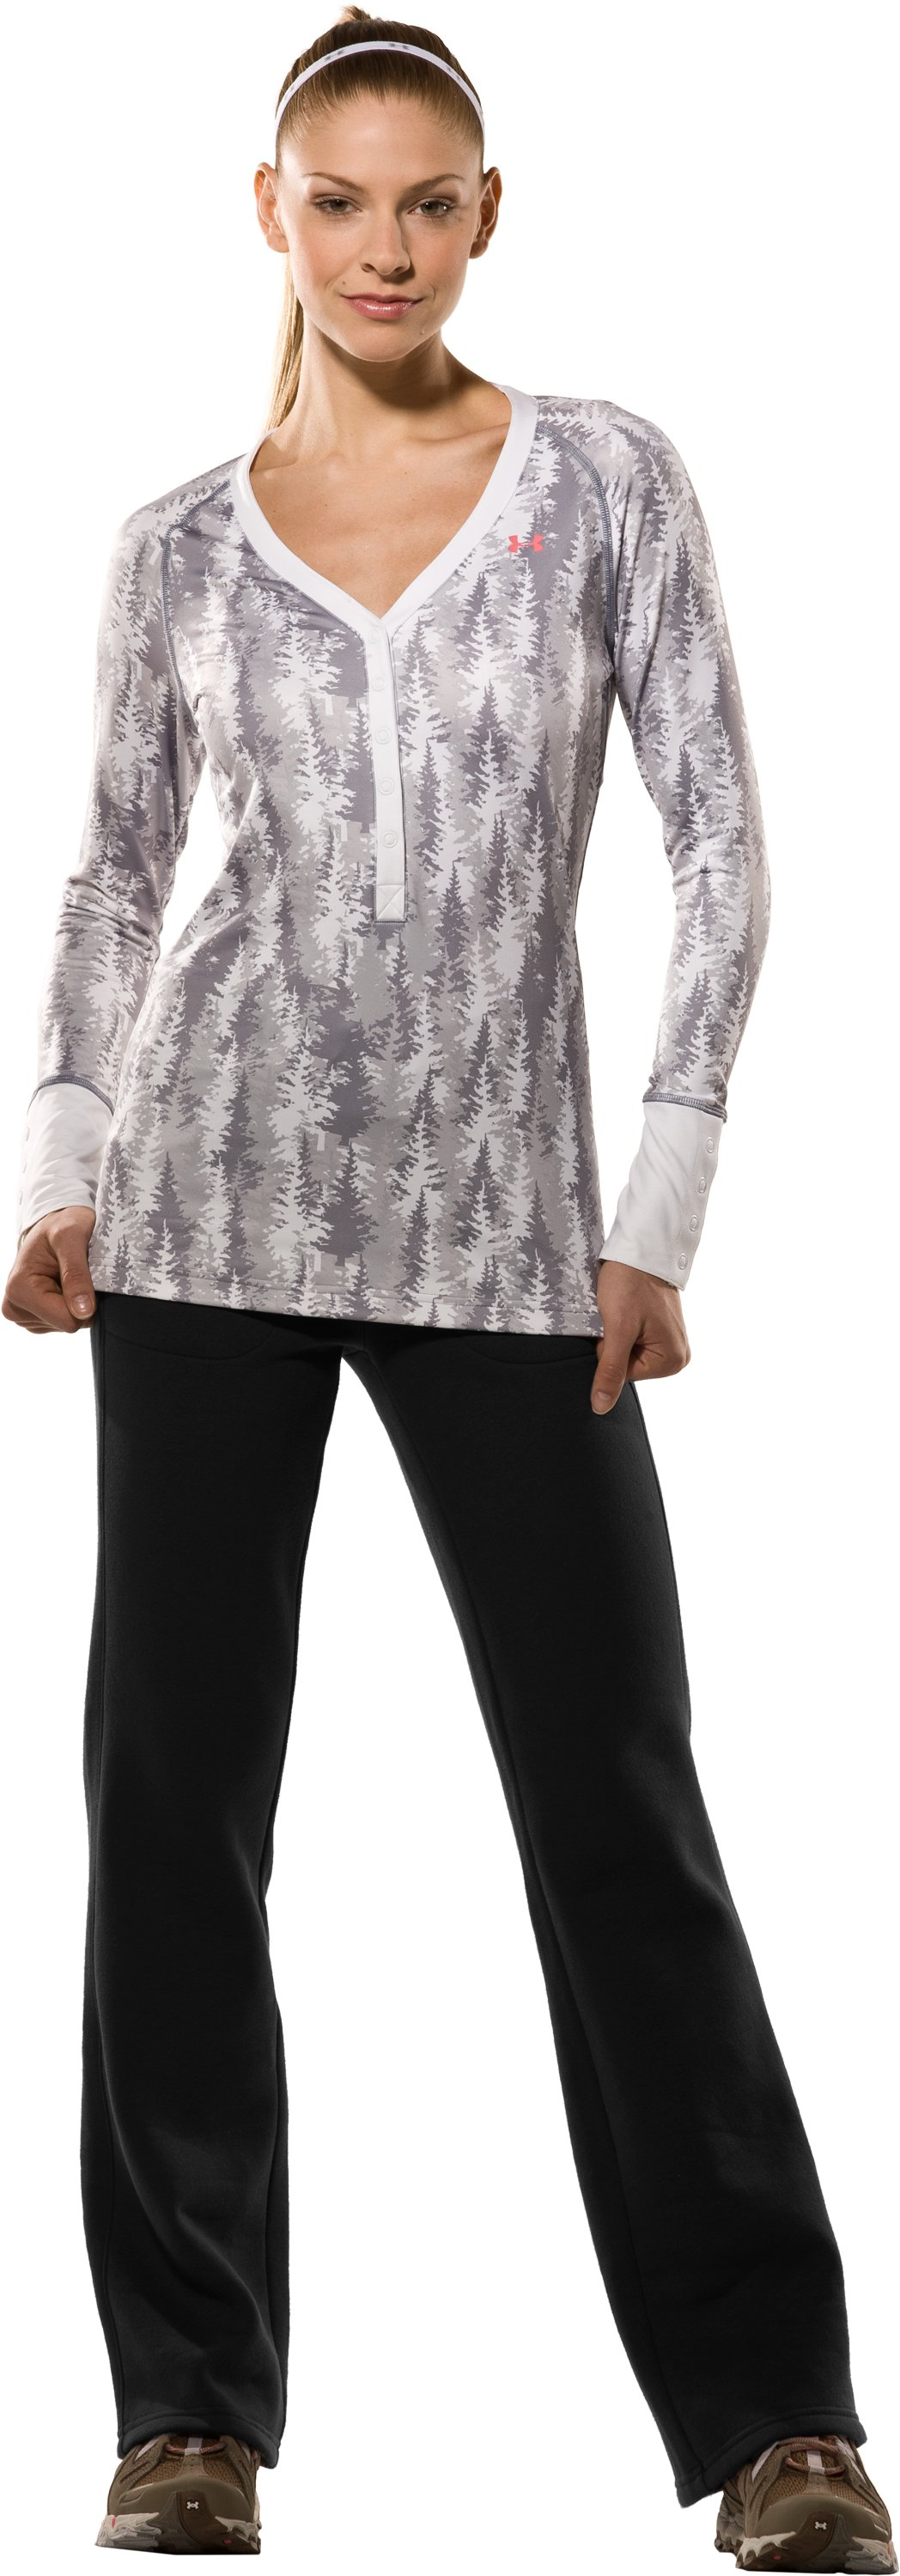 Women's EVO ColdGear® Tree Print Henley Shirt, White, Front